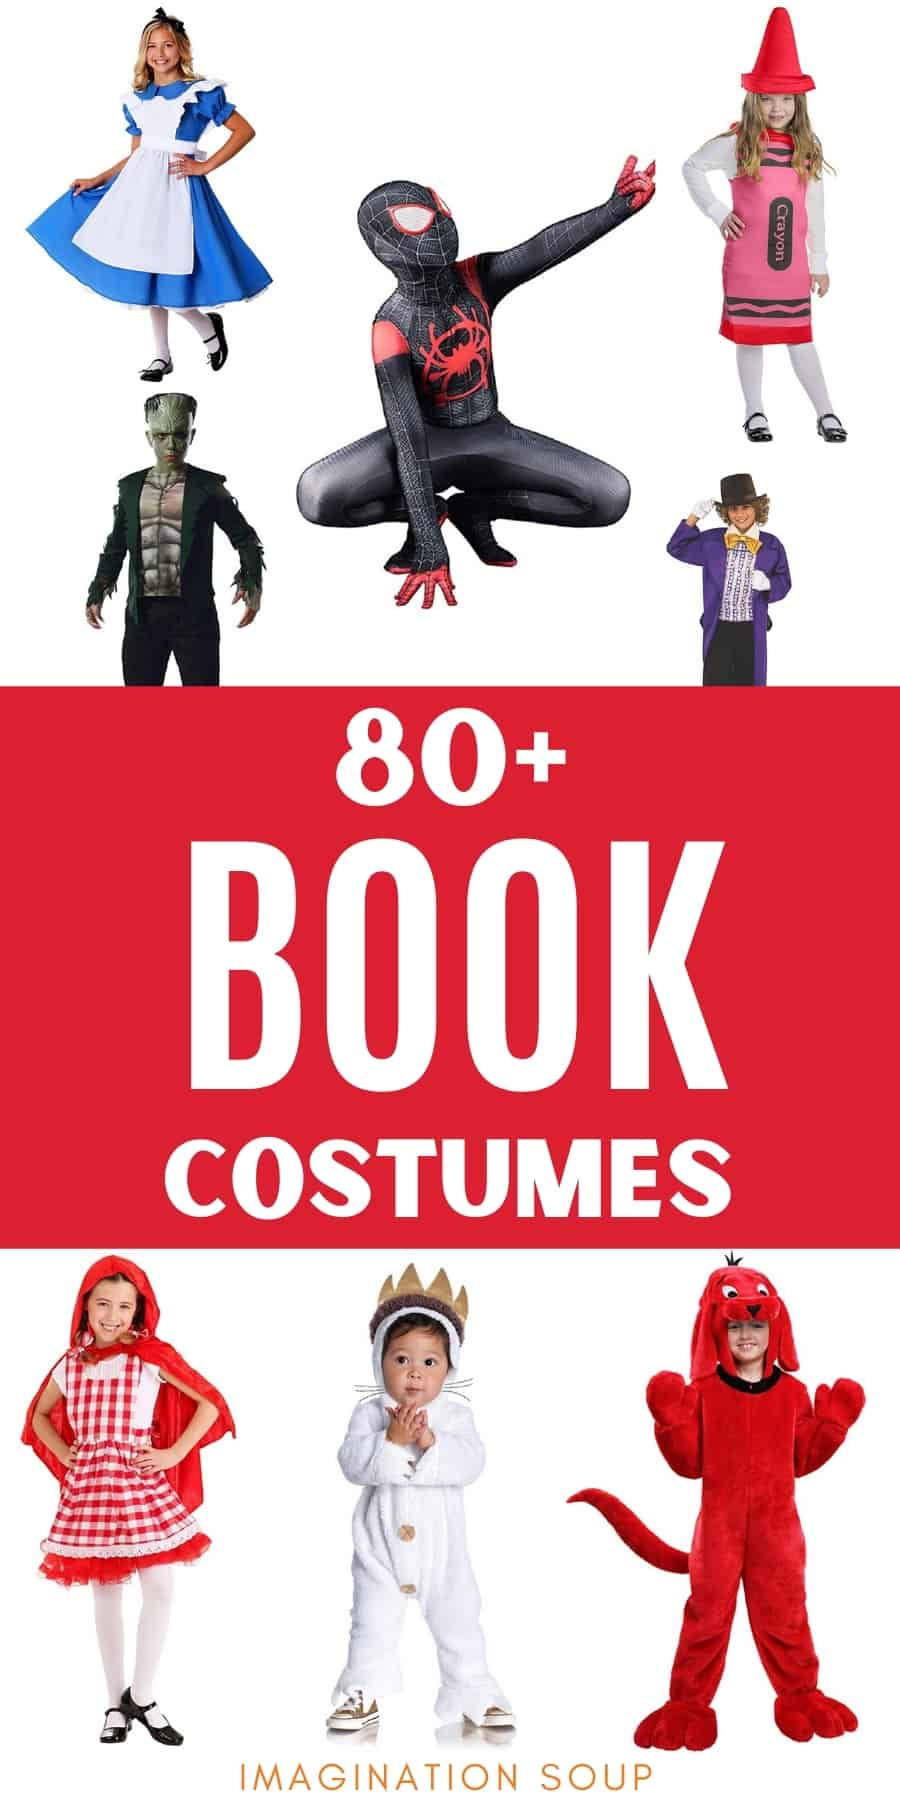 80 book character costumes for kids on Halloween or World Book Day